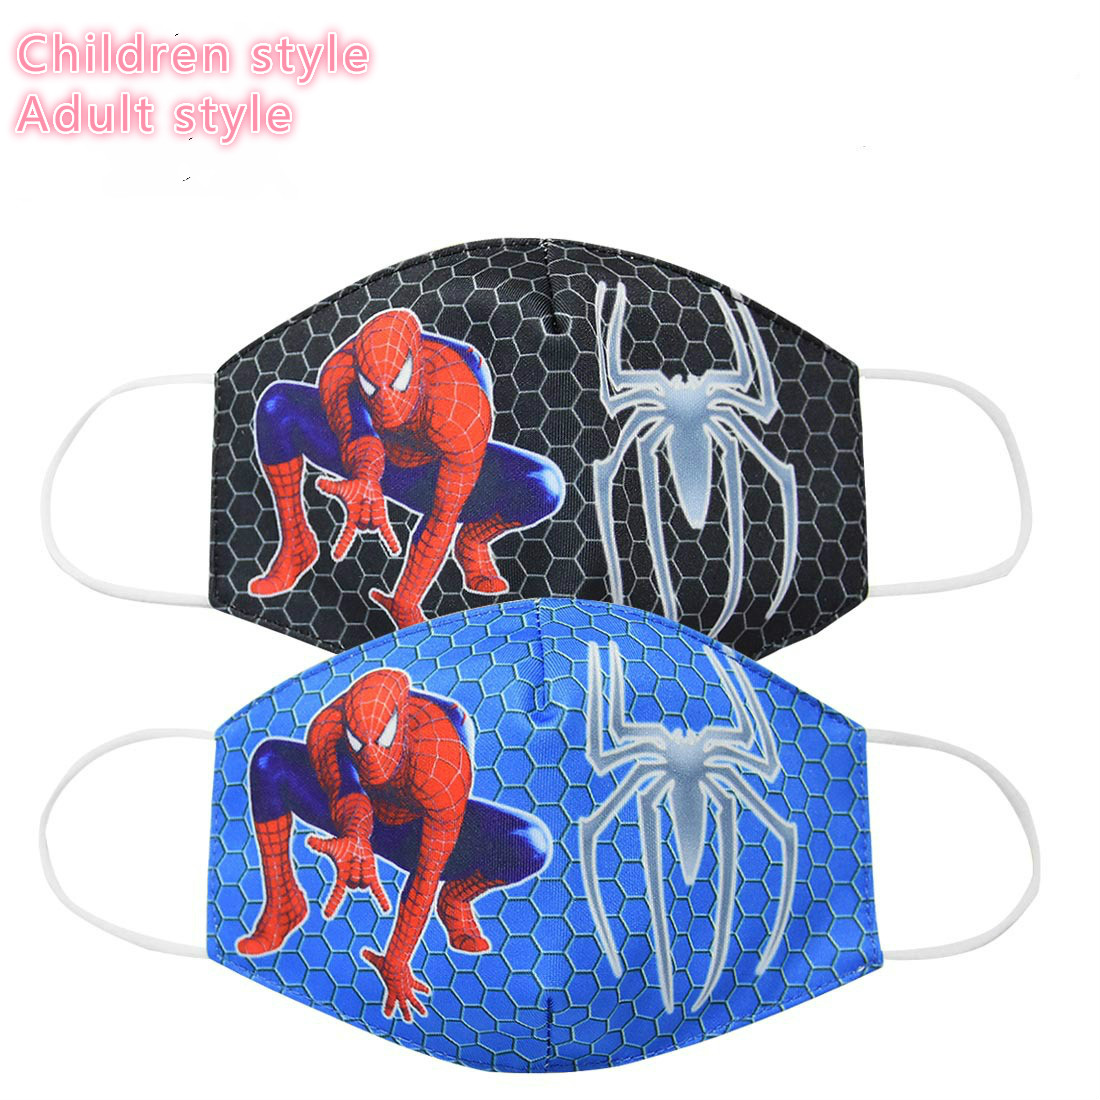 Kids Adult Cartoons Spiderman Print Anti-Dust Face Mouth Mask Lovely Breathable Washable Easy To Breathe  Mouth Mask Thick